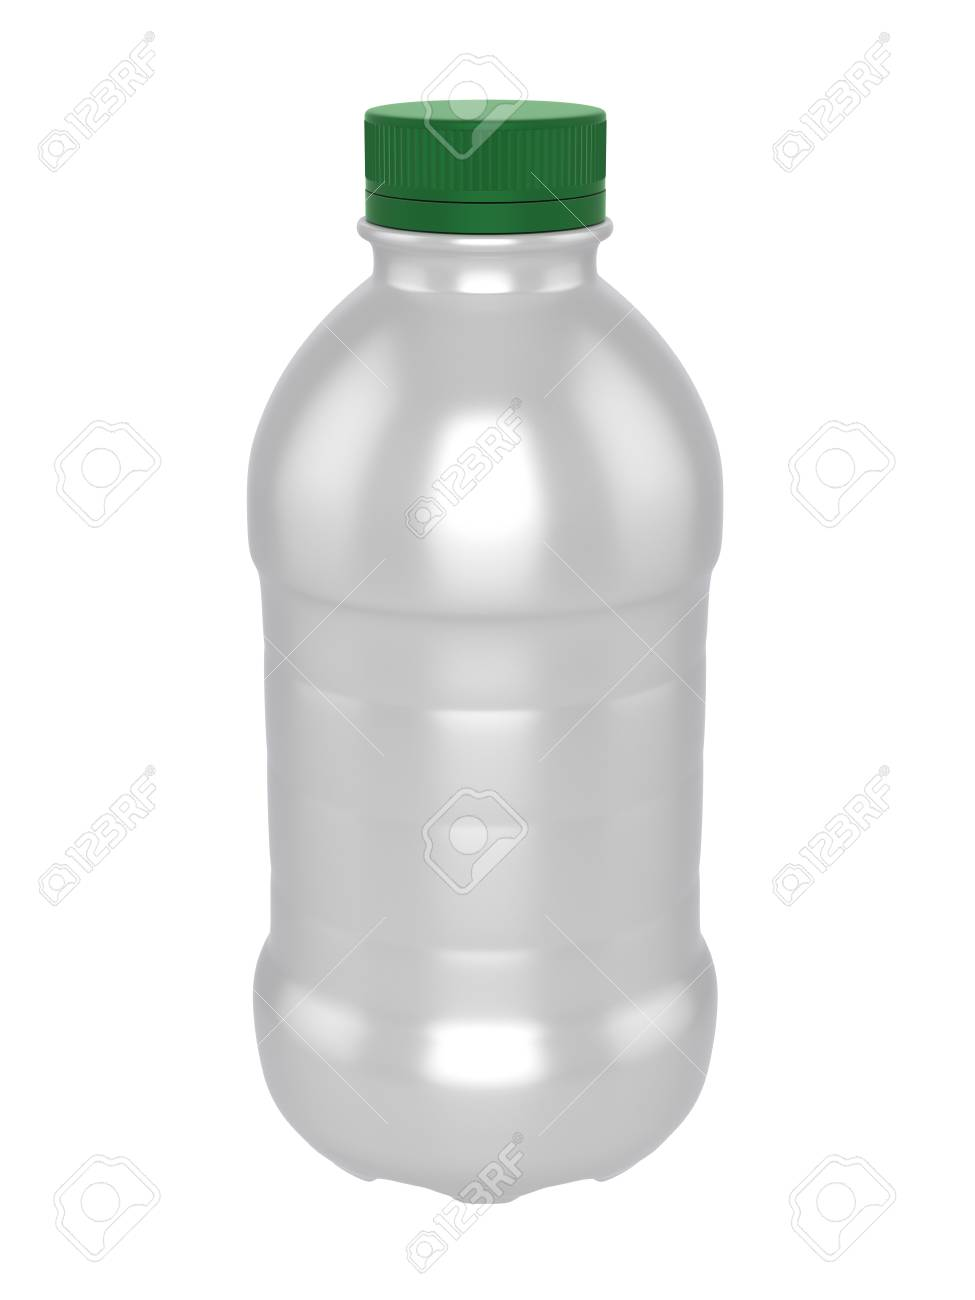 Template Plastic | 3d Realistic Render Of Template Plastic Bottle Of Milk Green Lid